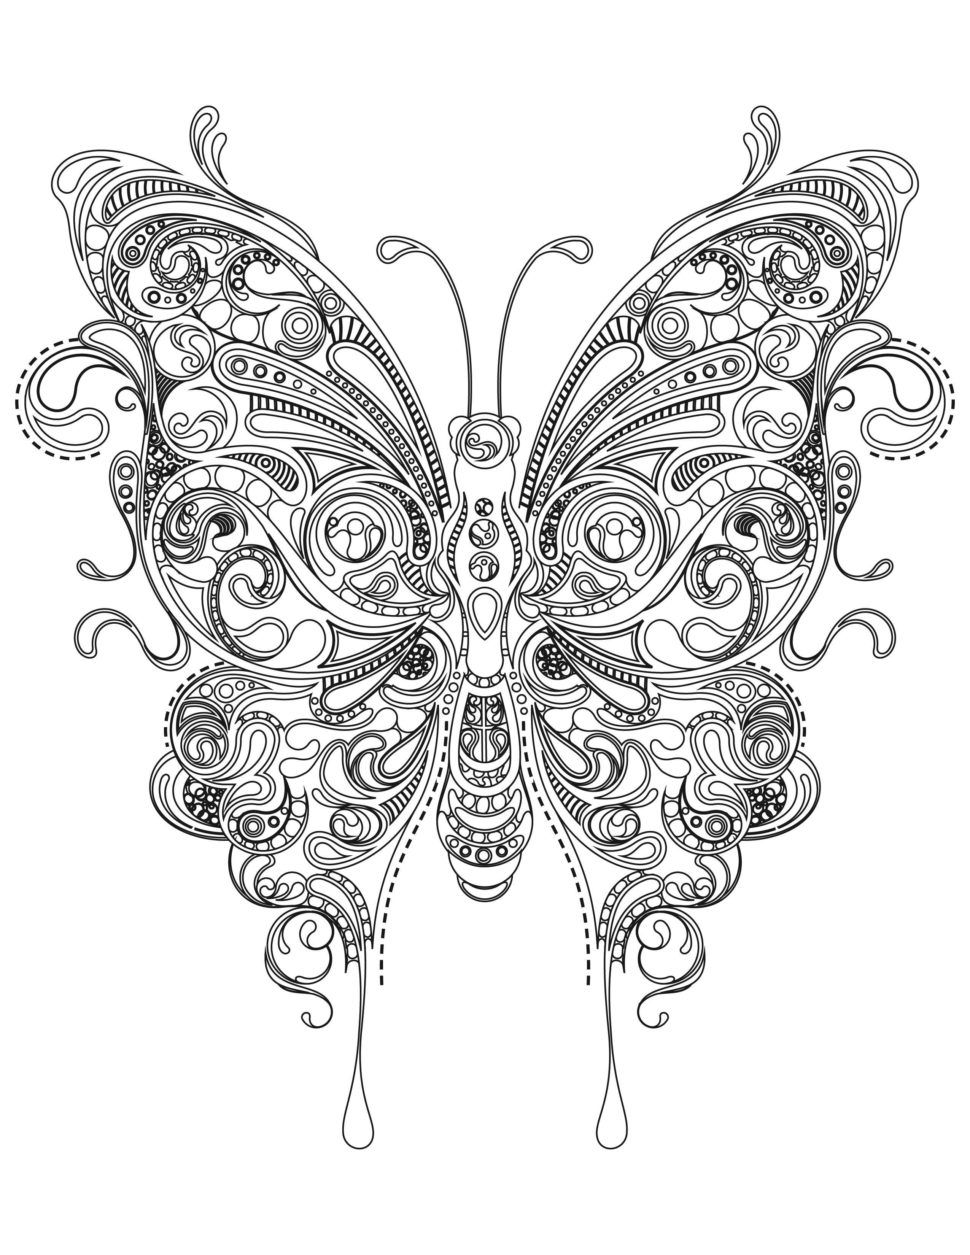 Pin By T Stevens On Color Butterfly Coloring Page Coloring Pages Inspirational Heart Coloring Pages [ 1255 x 970 Pixel ]